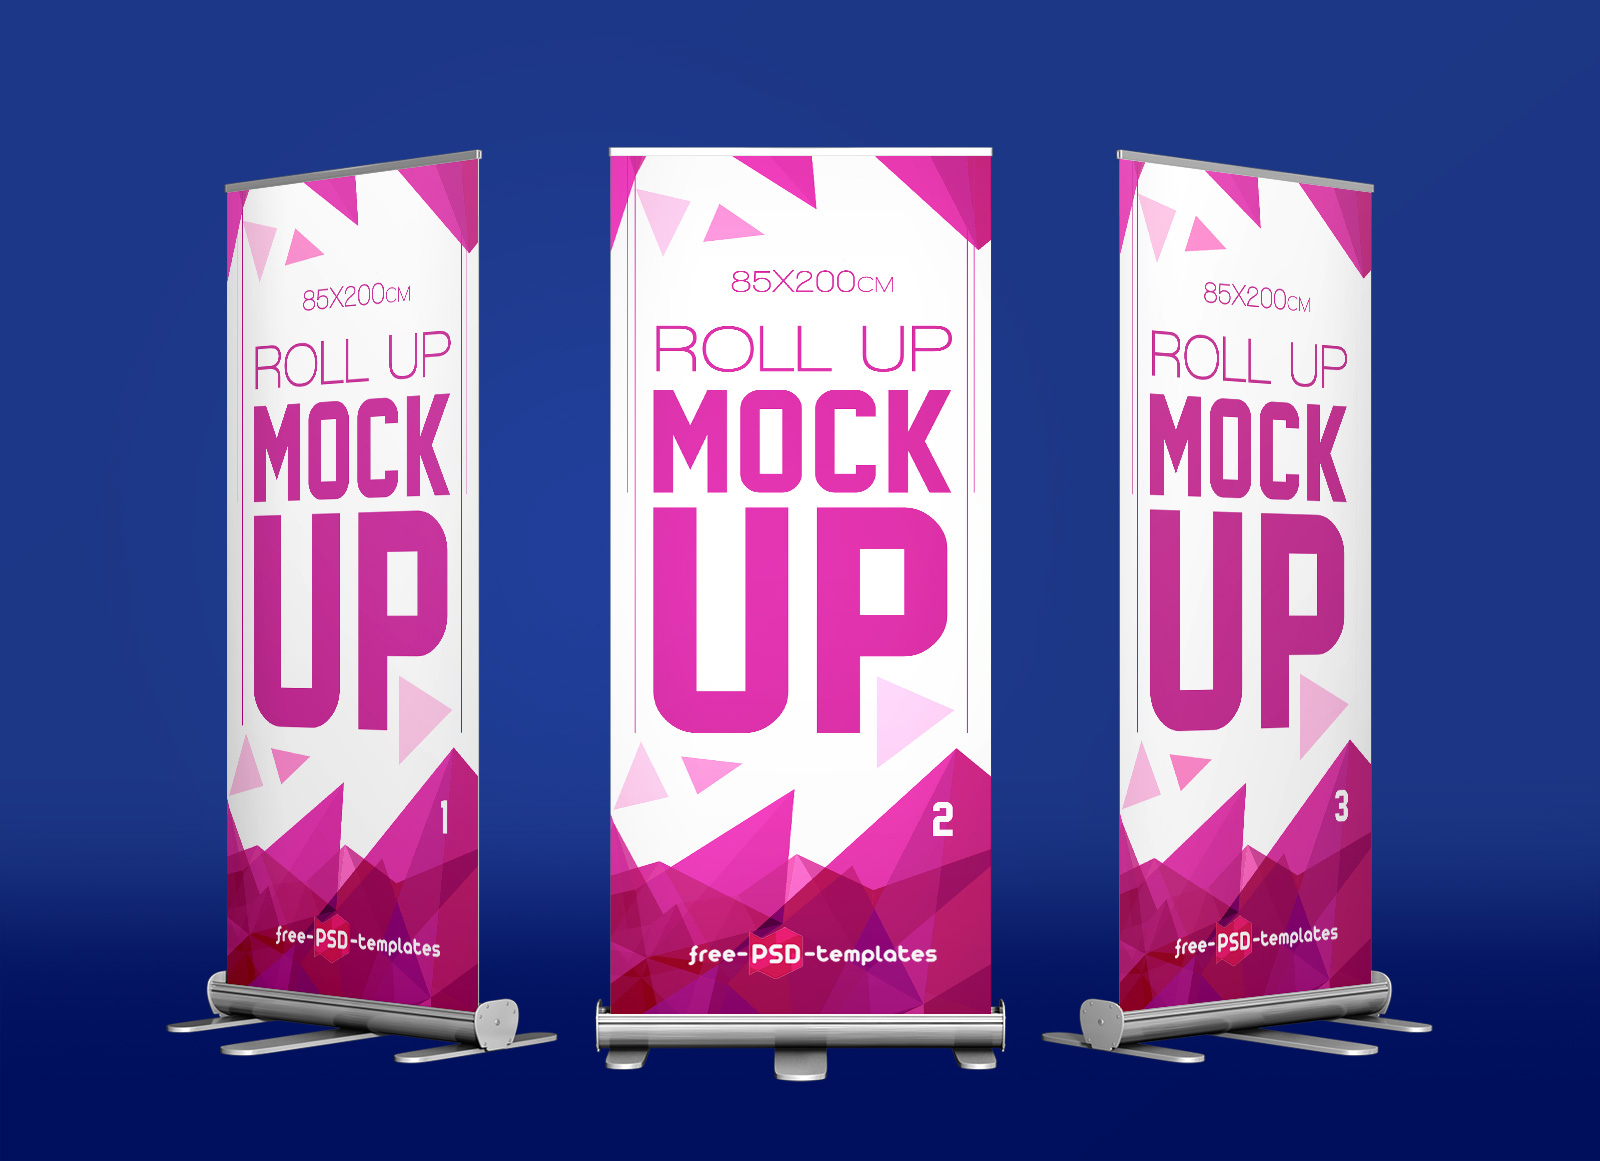 Exhibition Stand Mockup Psd Free : Free exhibition roll up standing banner mockup psd good mockups